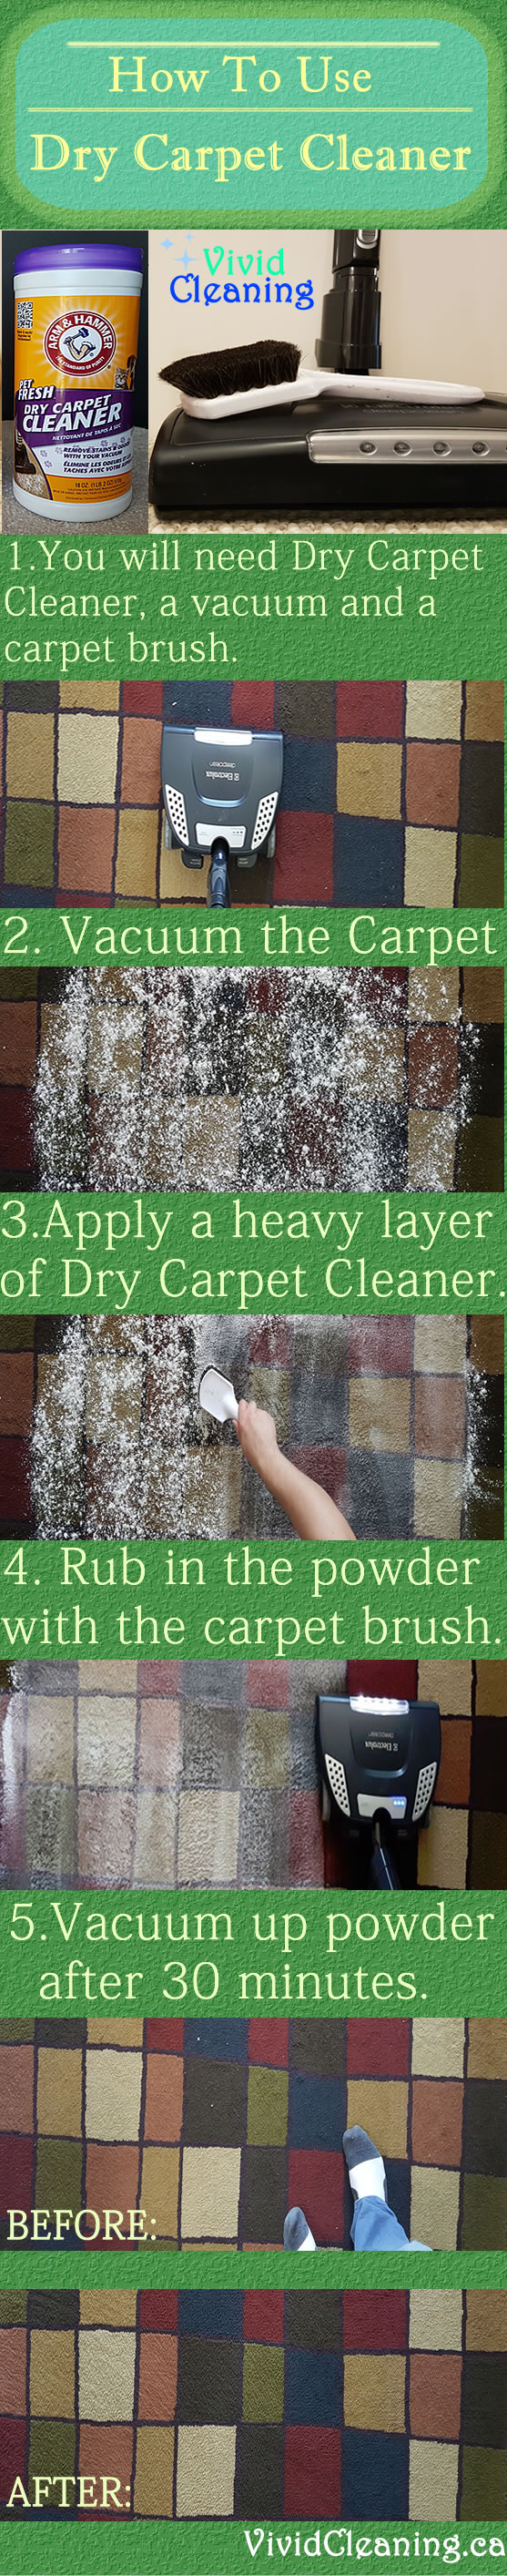 How To Use Dry Carpet Cleaner 1. You will need Dry Carpet Cleaner, a